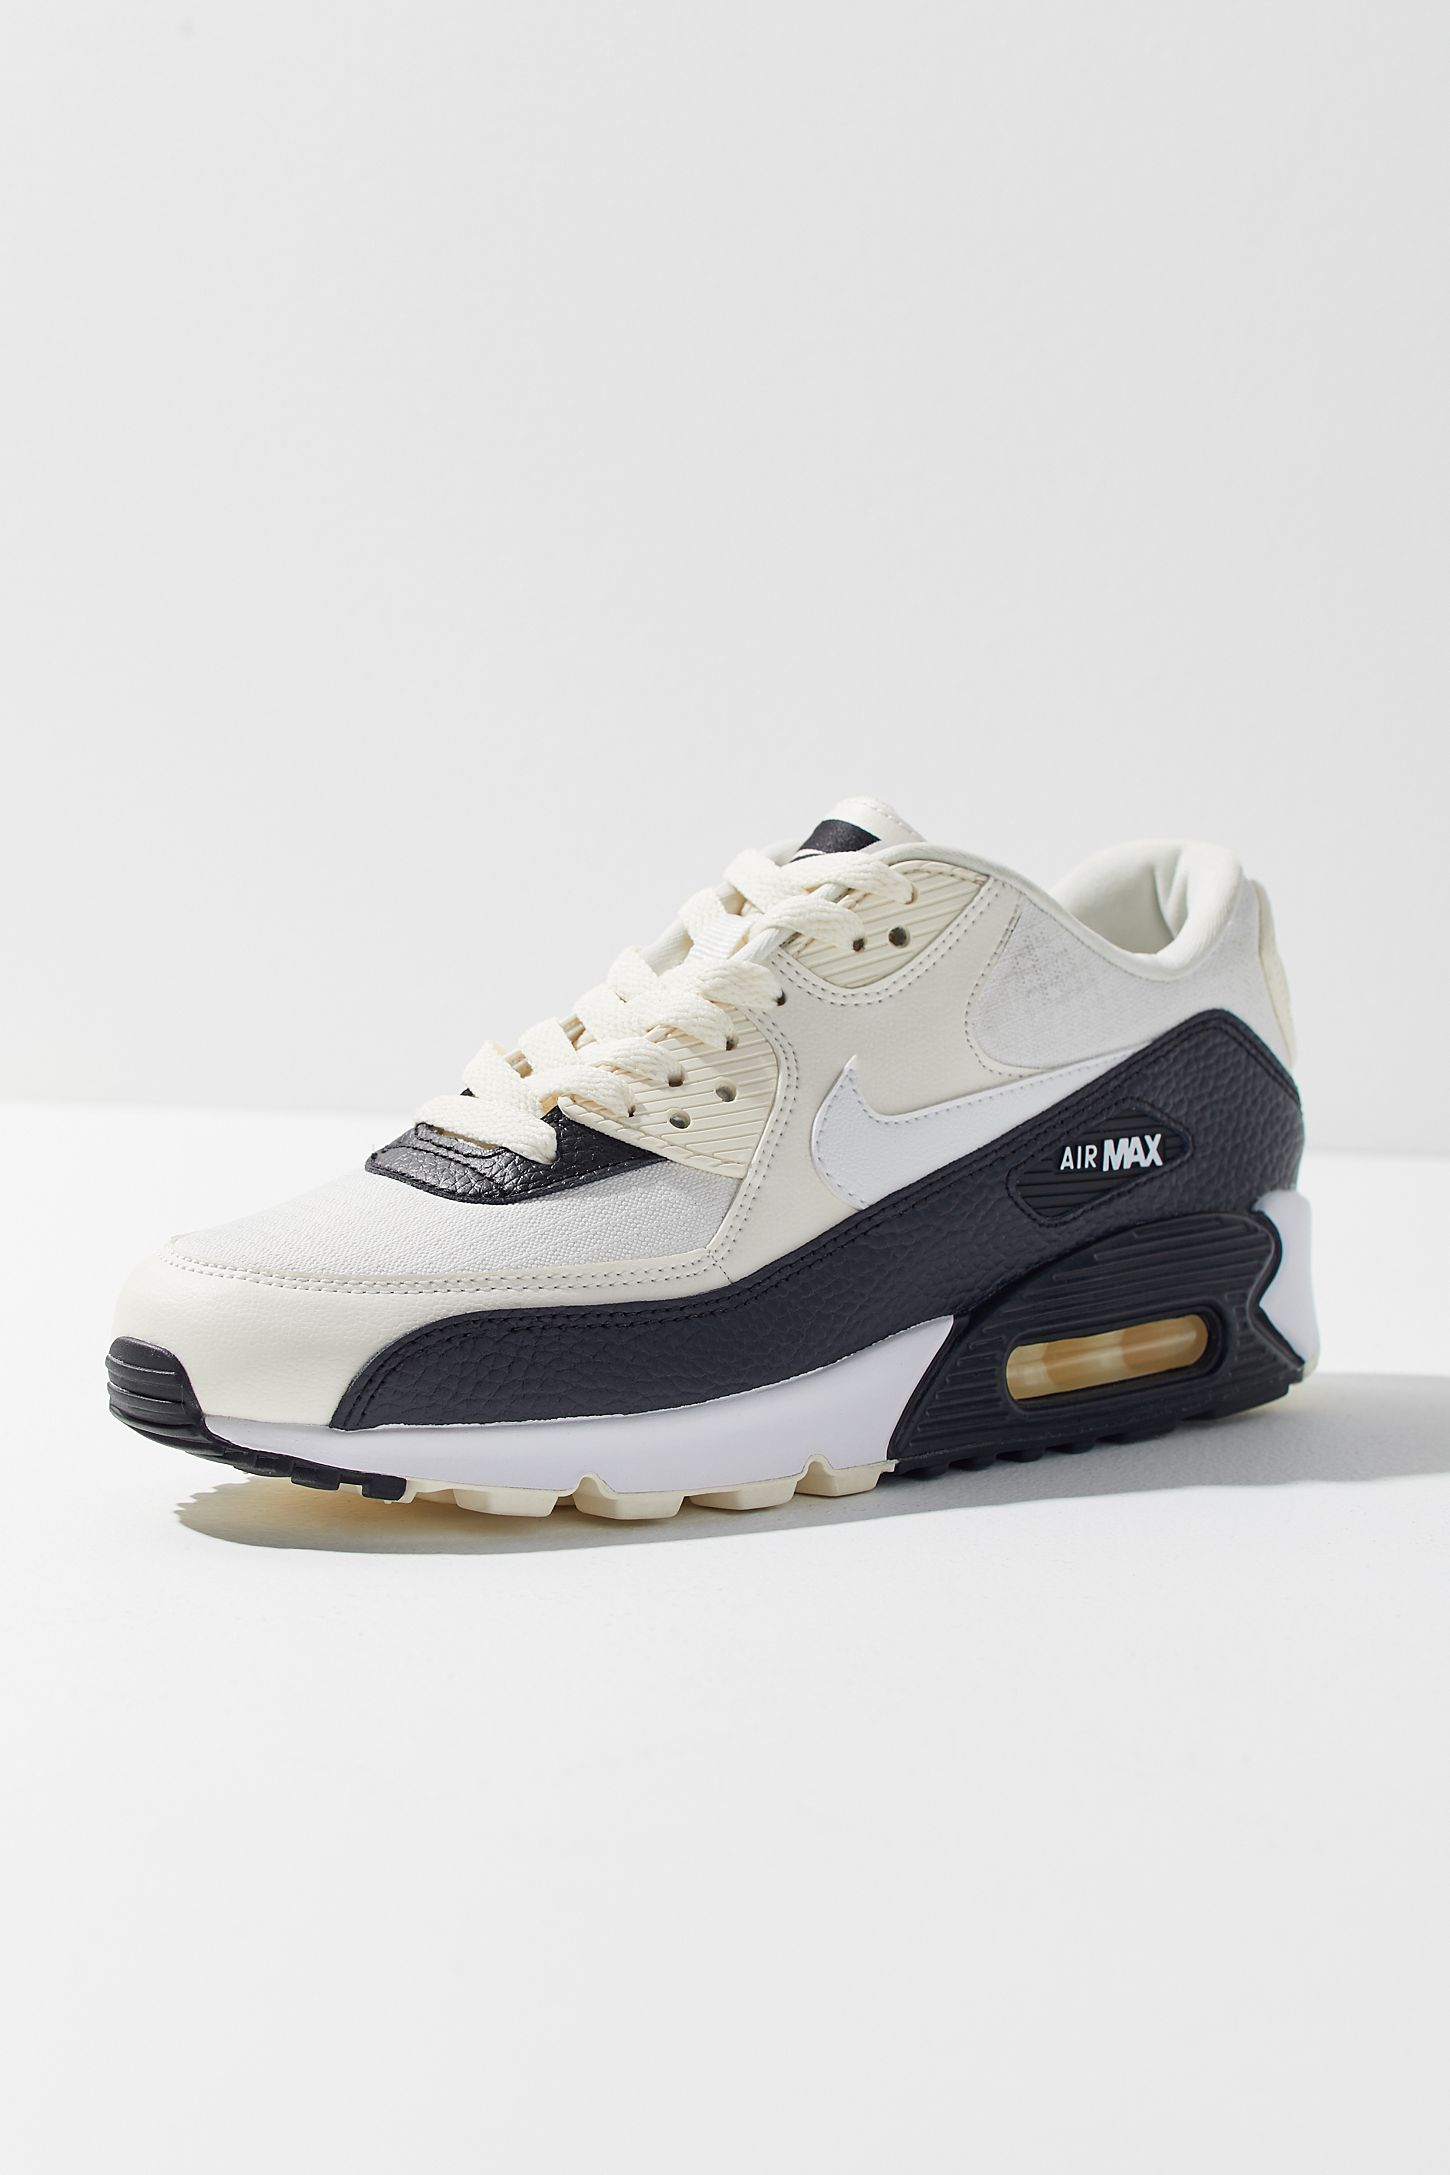 Urban Outfitters x Nike Nike Air Max 90 Women's Sneaker Black 8 at Urban Outfitters from Urban Outfitters (US) Real Simple  Real Simple